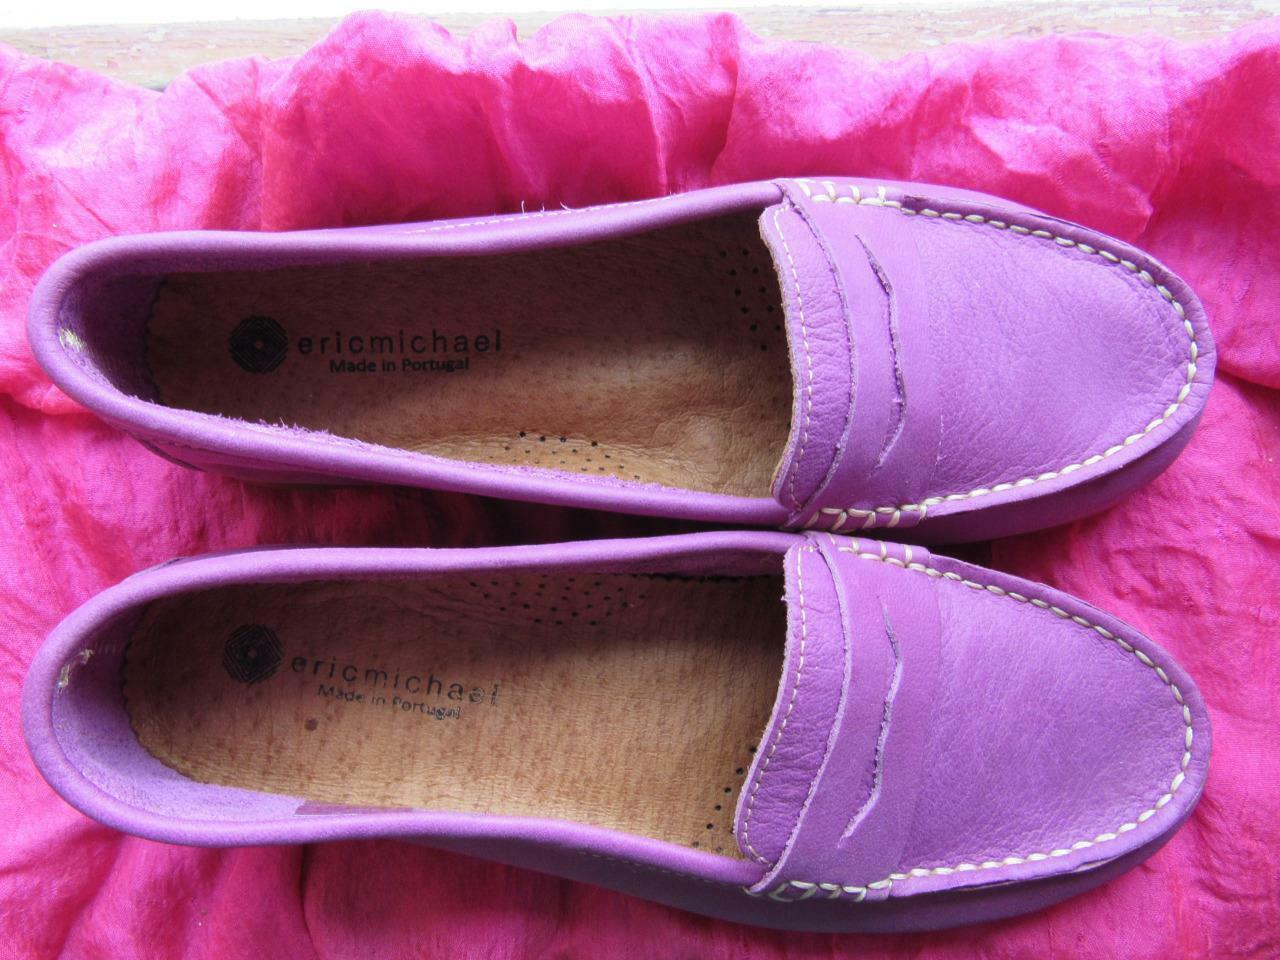 ERIC MICHAEL Scarpe BURGUNDY PORTUGAL SUEDE LOAFERS SIZE 6 M 36 MADE